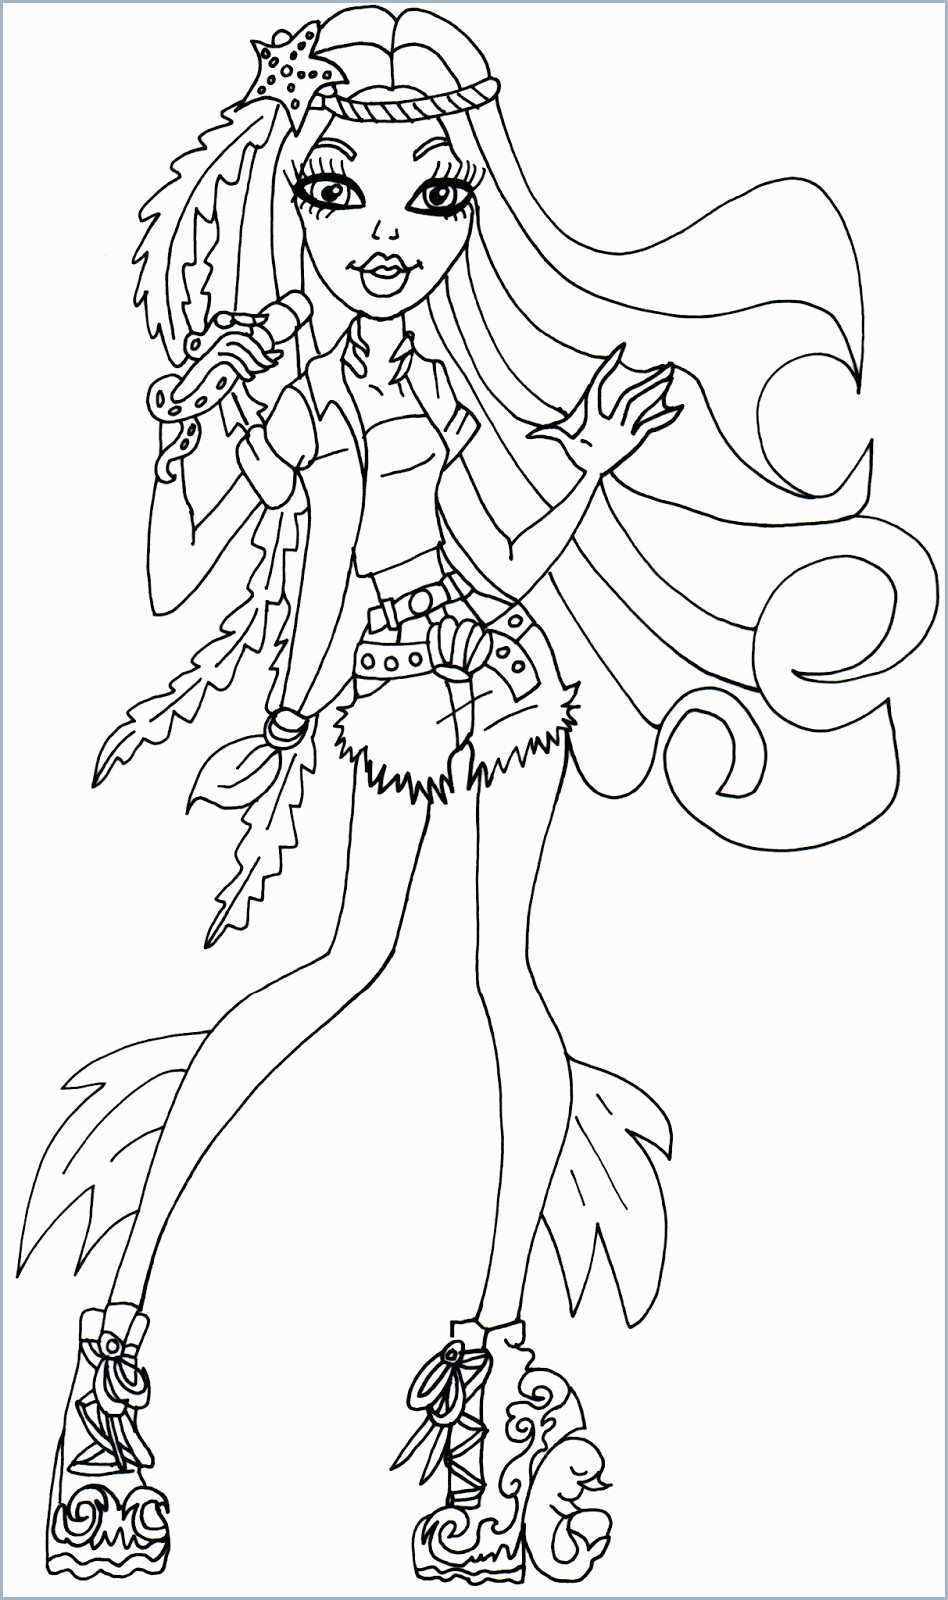 Monster High Coloring Page Monster High Free Printable Coloring Pages 29907